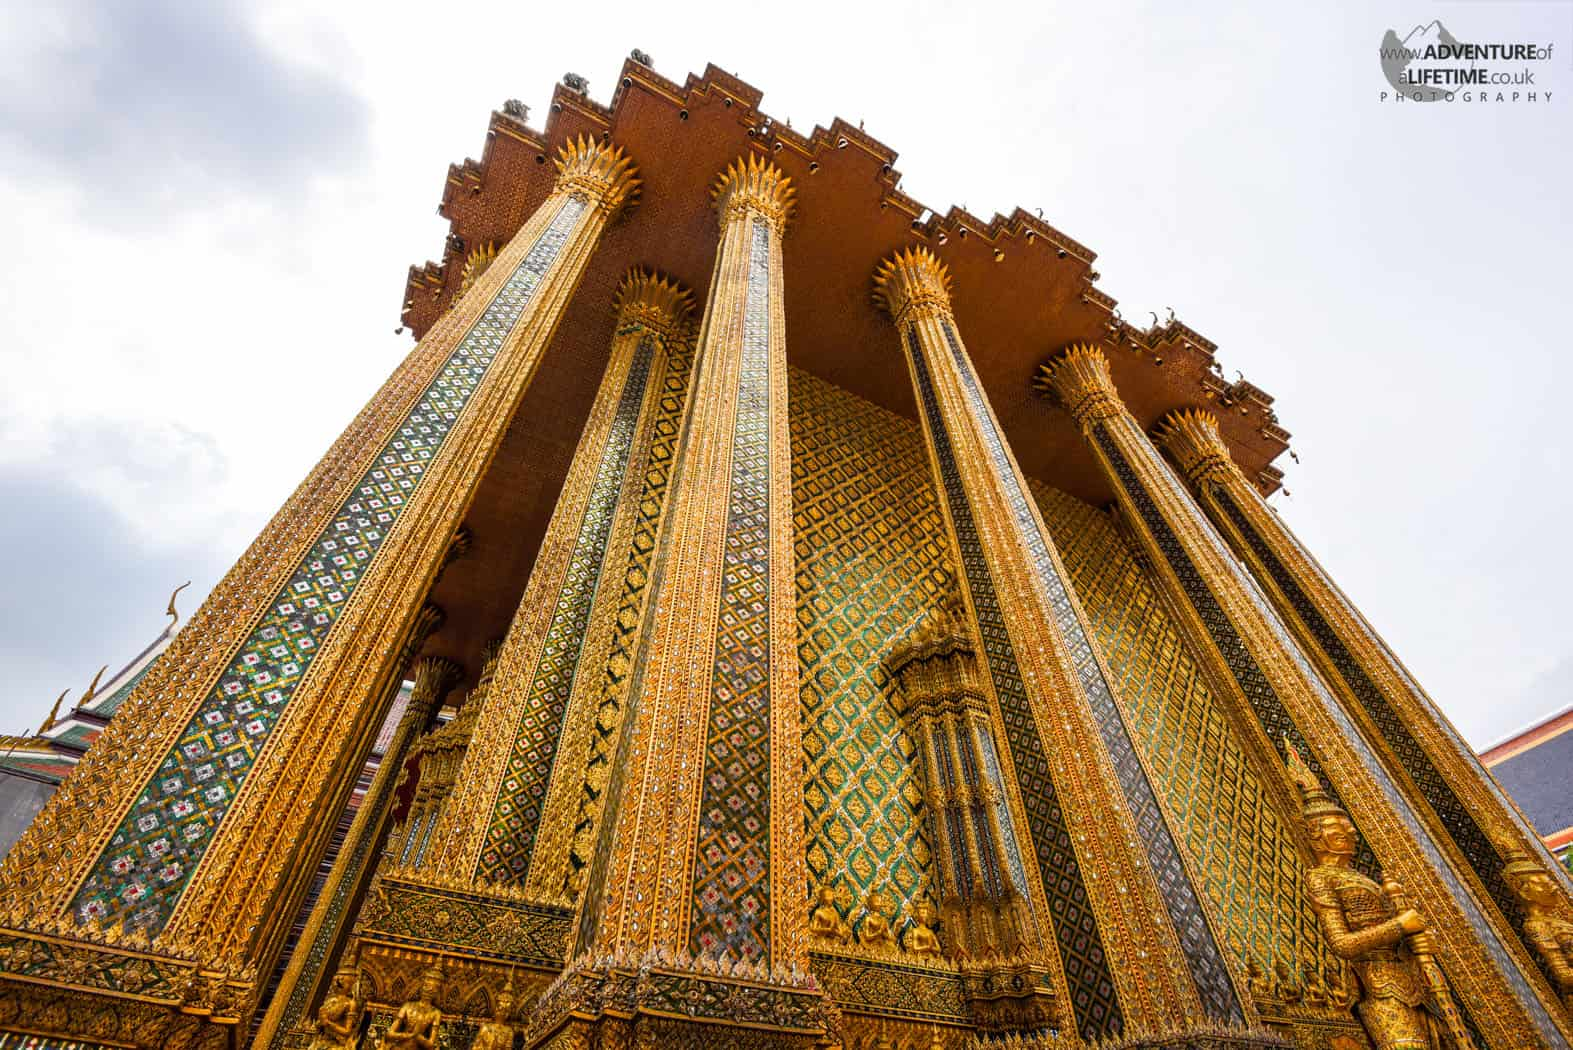 The Grand Palace Architecture